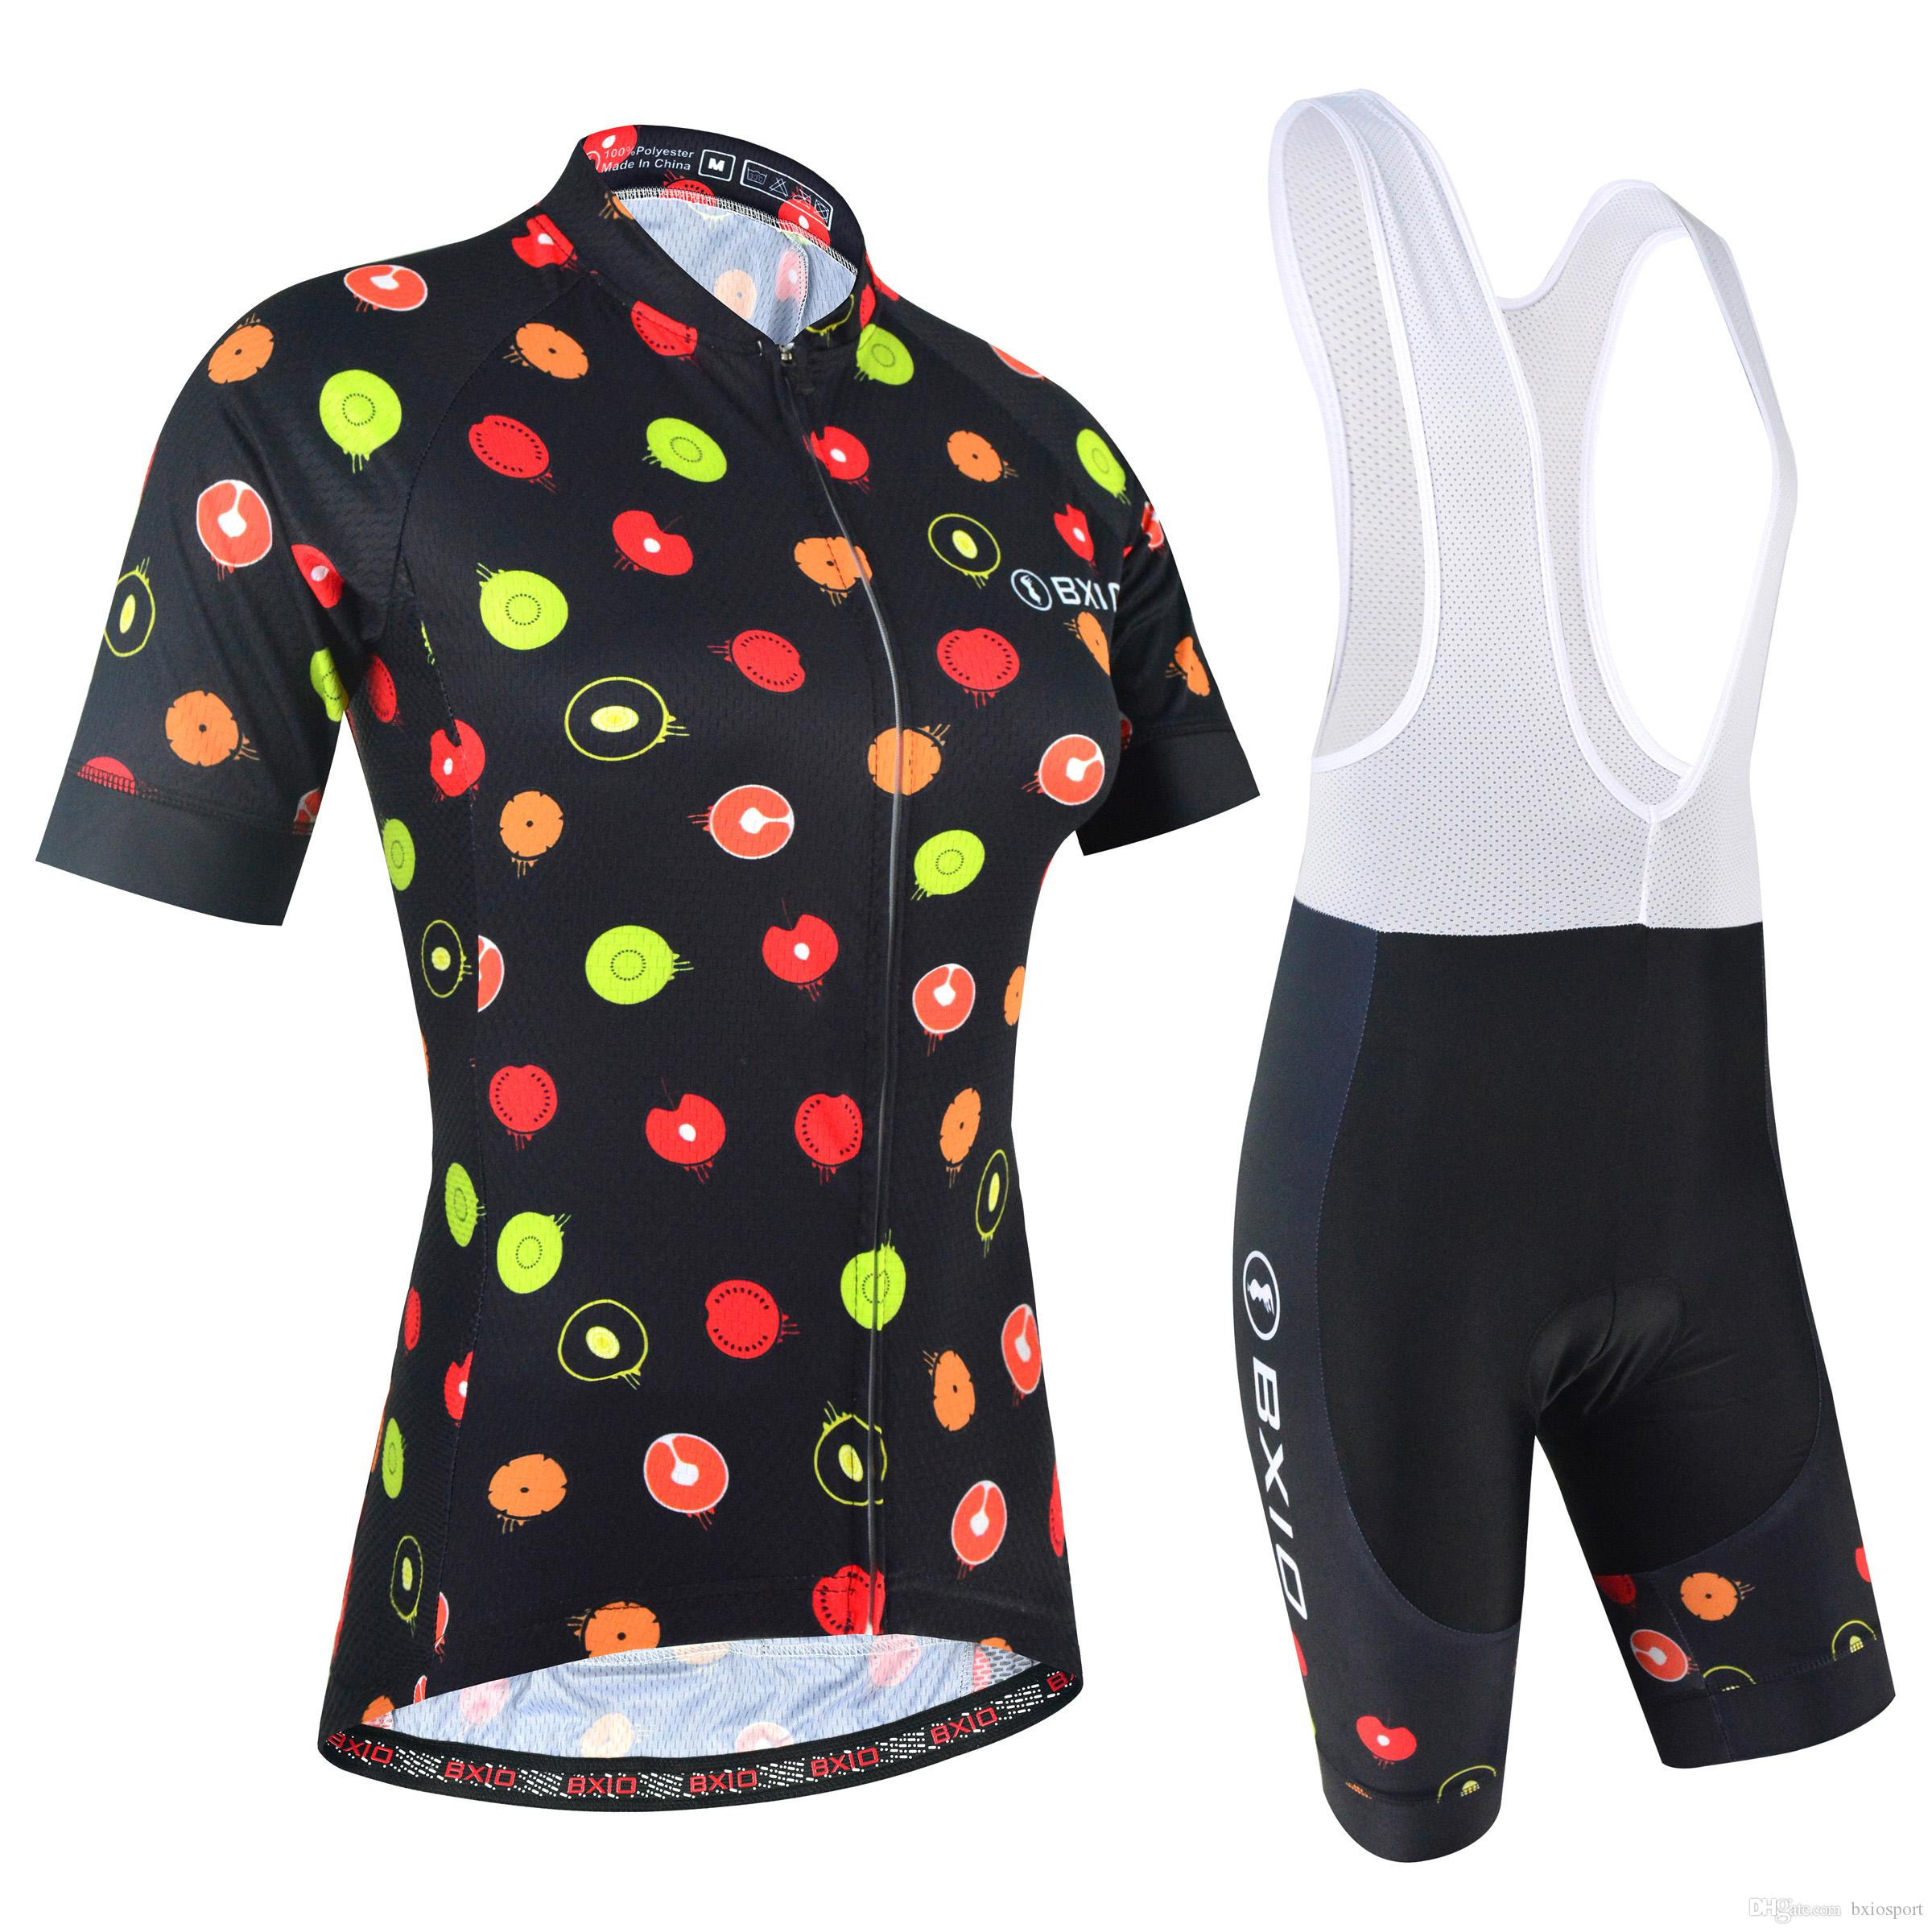 2018 BXIO New Cycling Jerseys Design And Colour Bike Clothing Different  Workmanship Cycling Clothing New Style Bicycle Clothing Women BX 166 Winter  Cycling ... 2b699b558